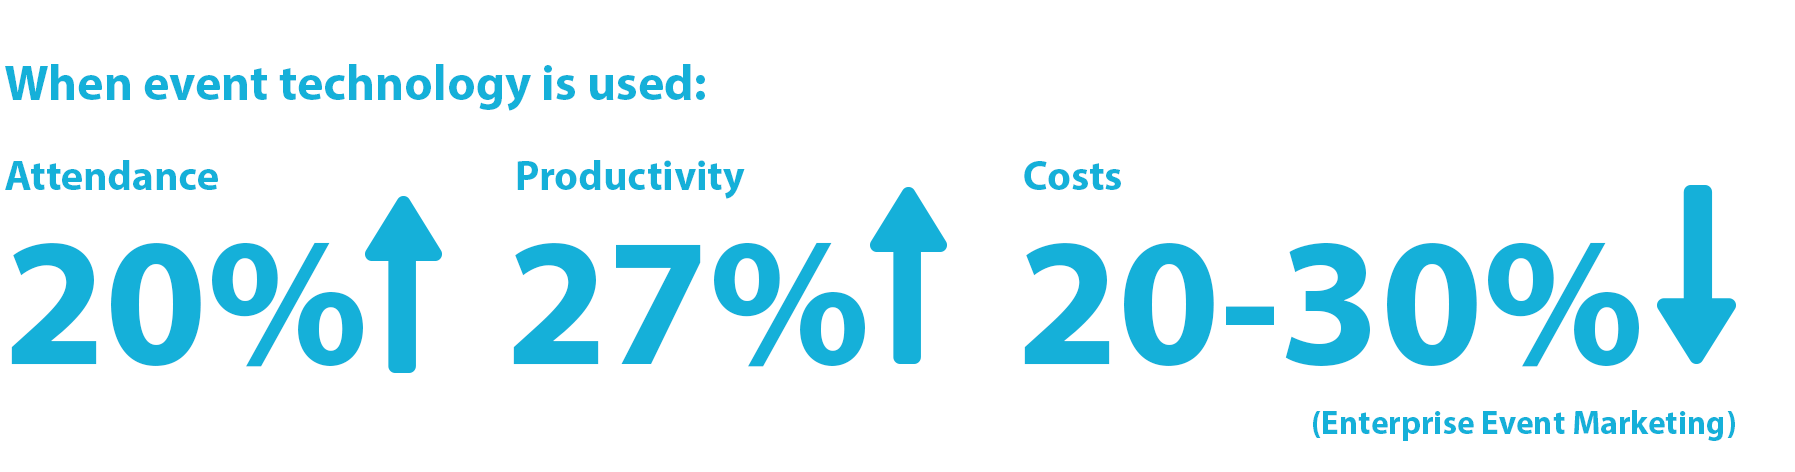 Statistic: Event technology can help increase event attendance by 20%, increase productivity by 27%, and decrease costs by 20-30%. (Enterprise Event Marketing)